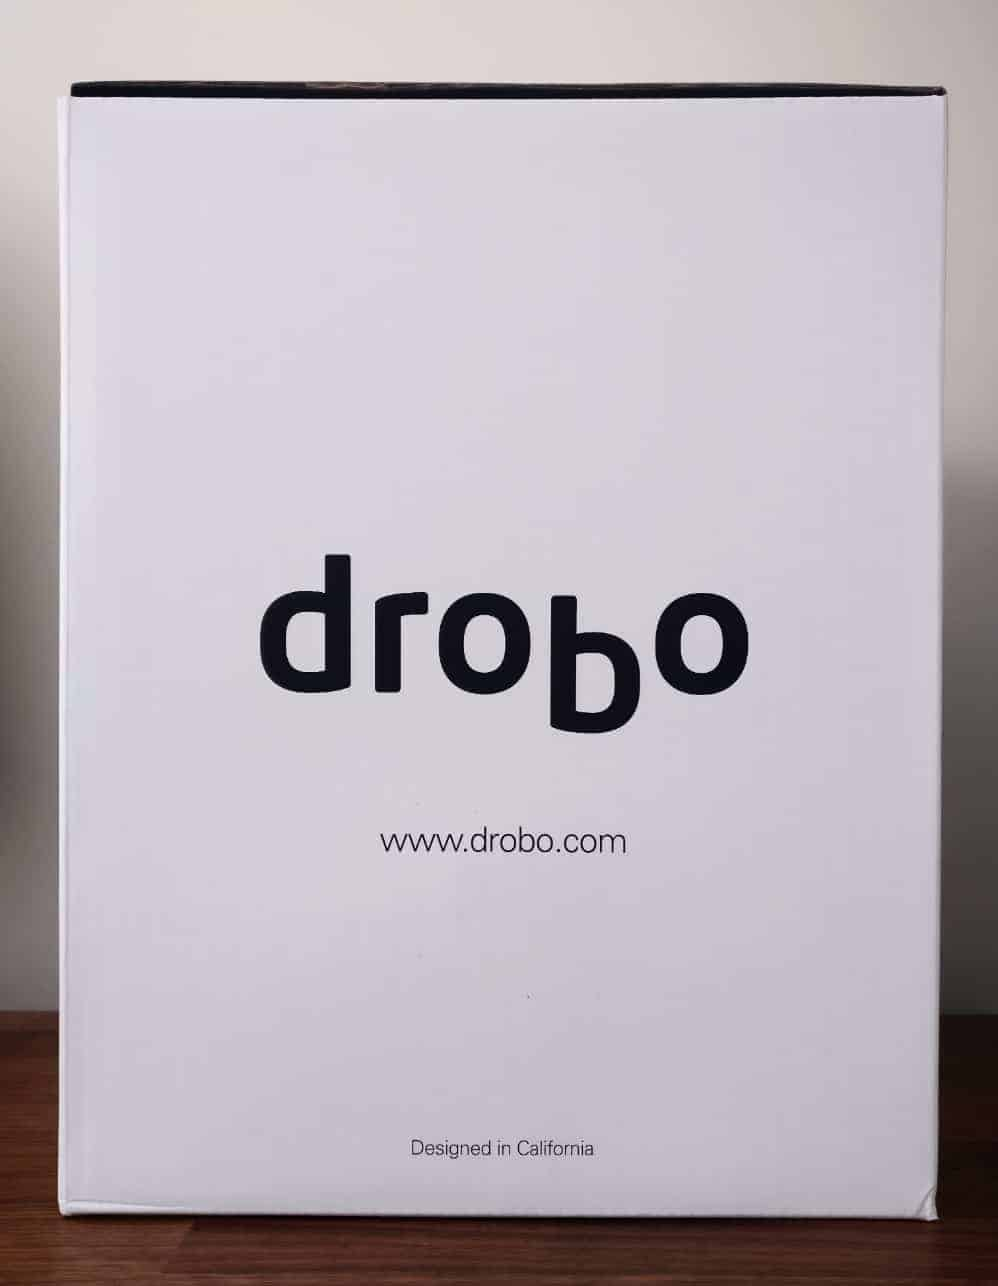 Drobo-5d3-photos-21 Drobo 5D3 DAS Review